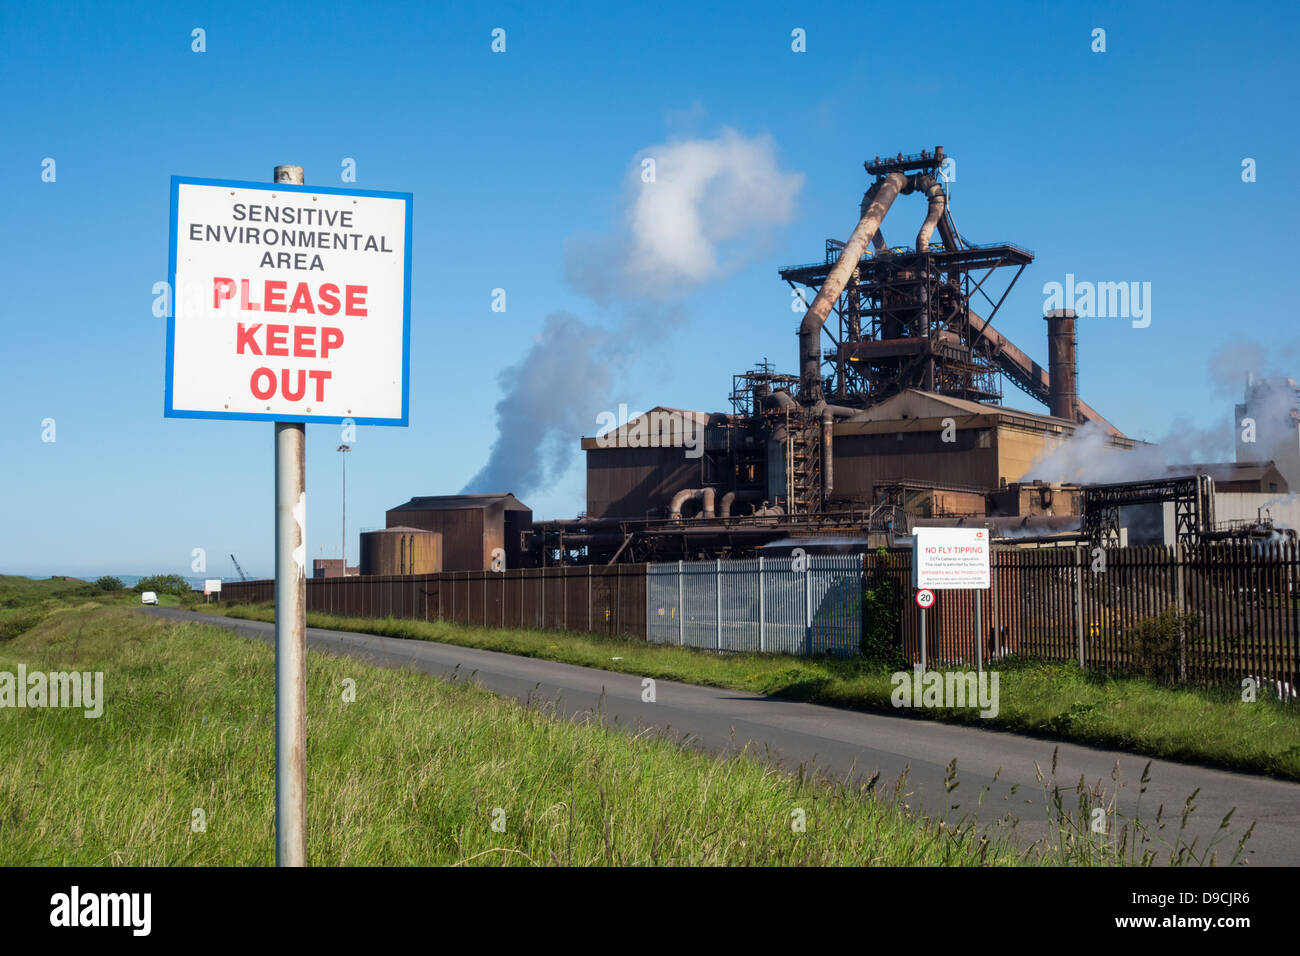 Sensitive Environmental Site sign near Steelworks at Redcar, England, UK Stock Photo